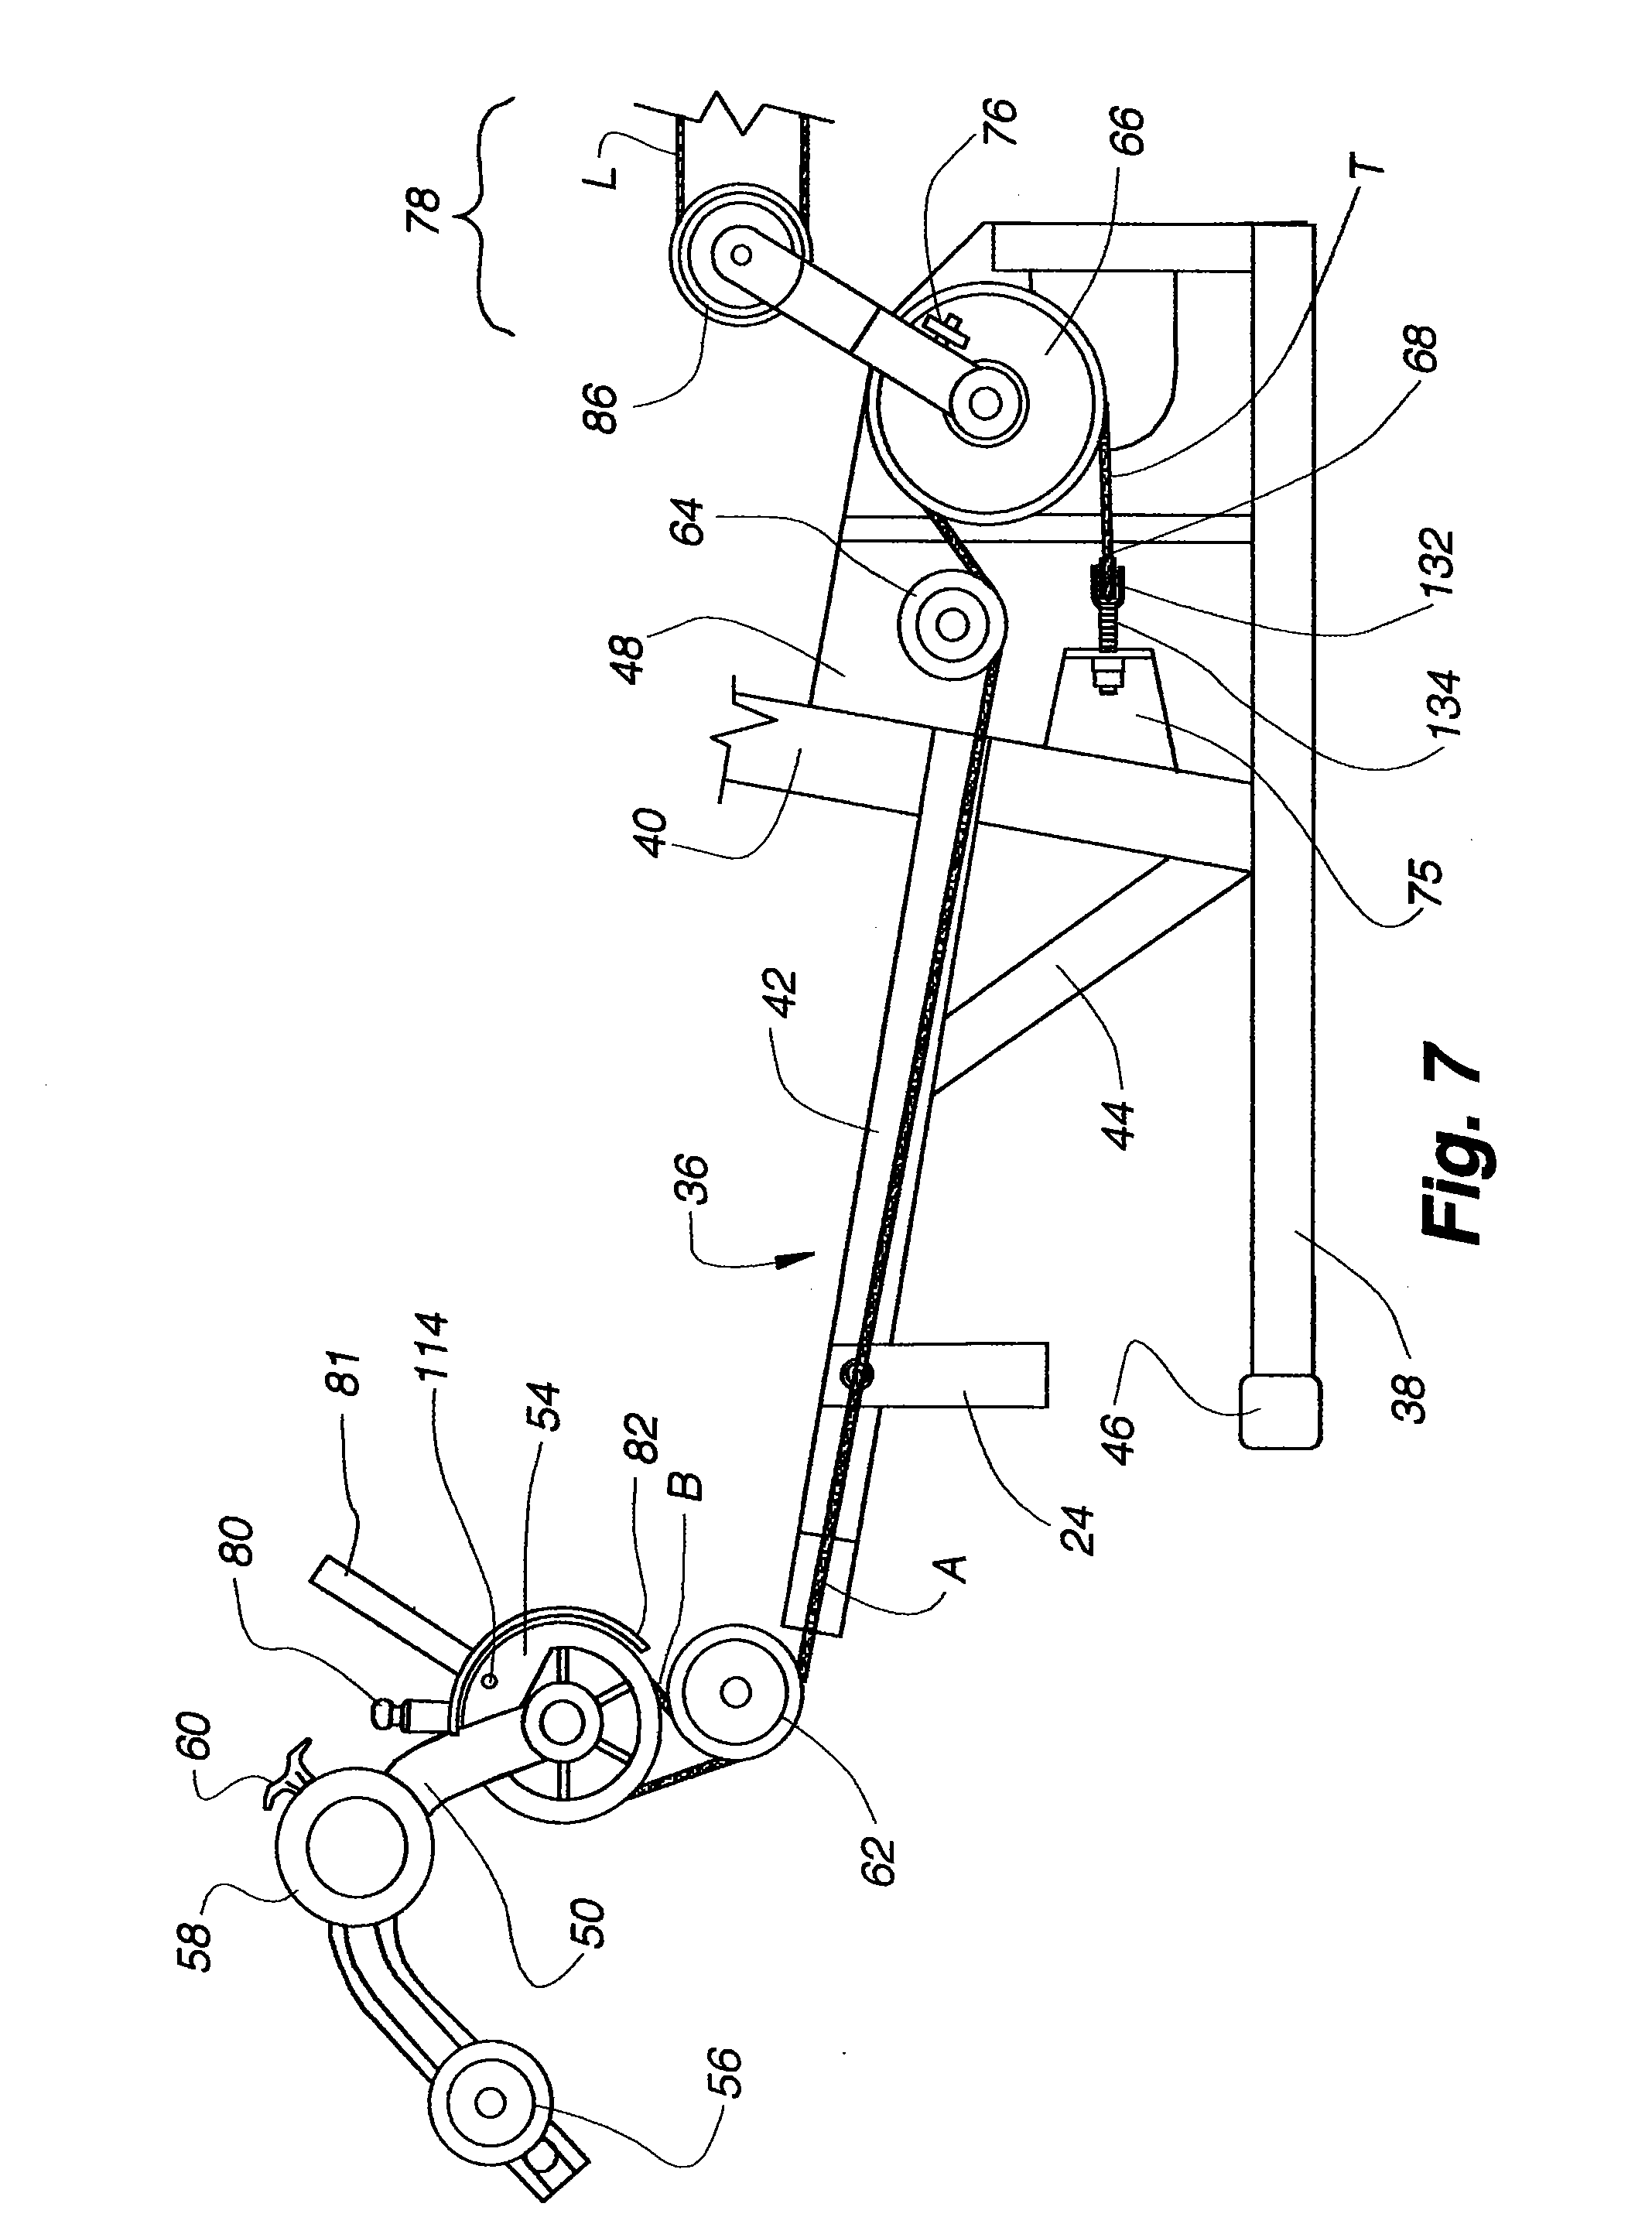 Patent Us7223213 - Dual-direction Pulley System